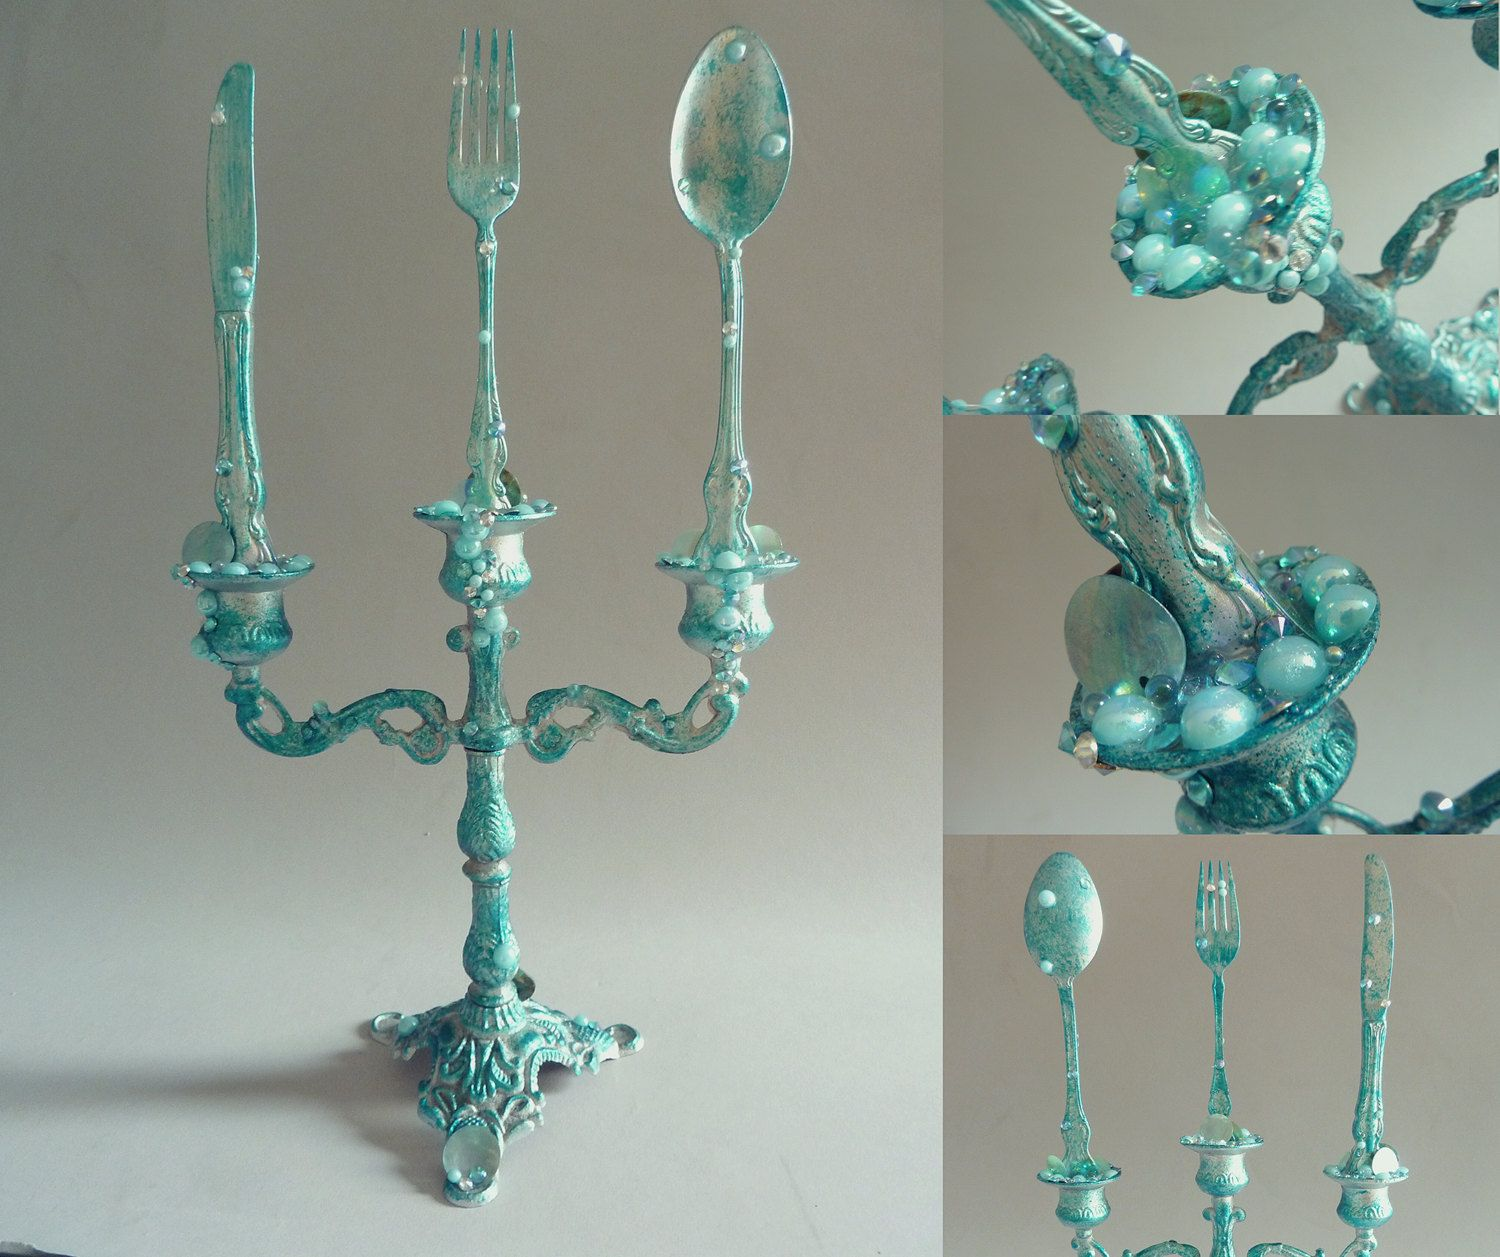 Little mermaid bathroom - The Little Mermaid Candelabra With Dinglehopper Blue Teal Silver